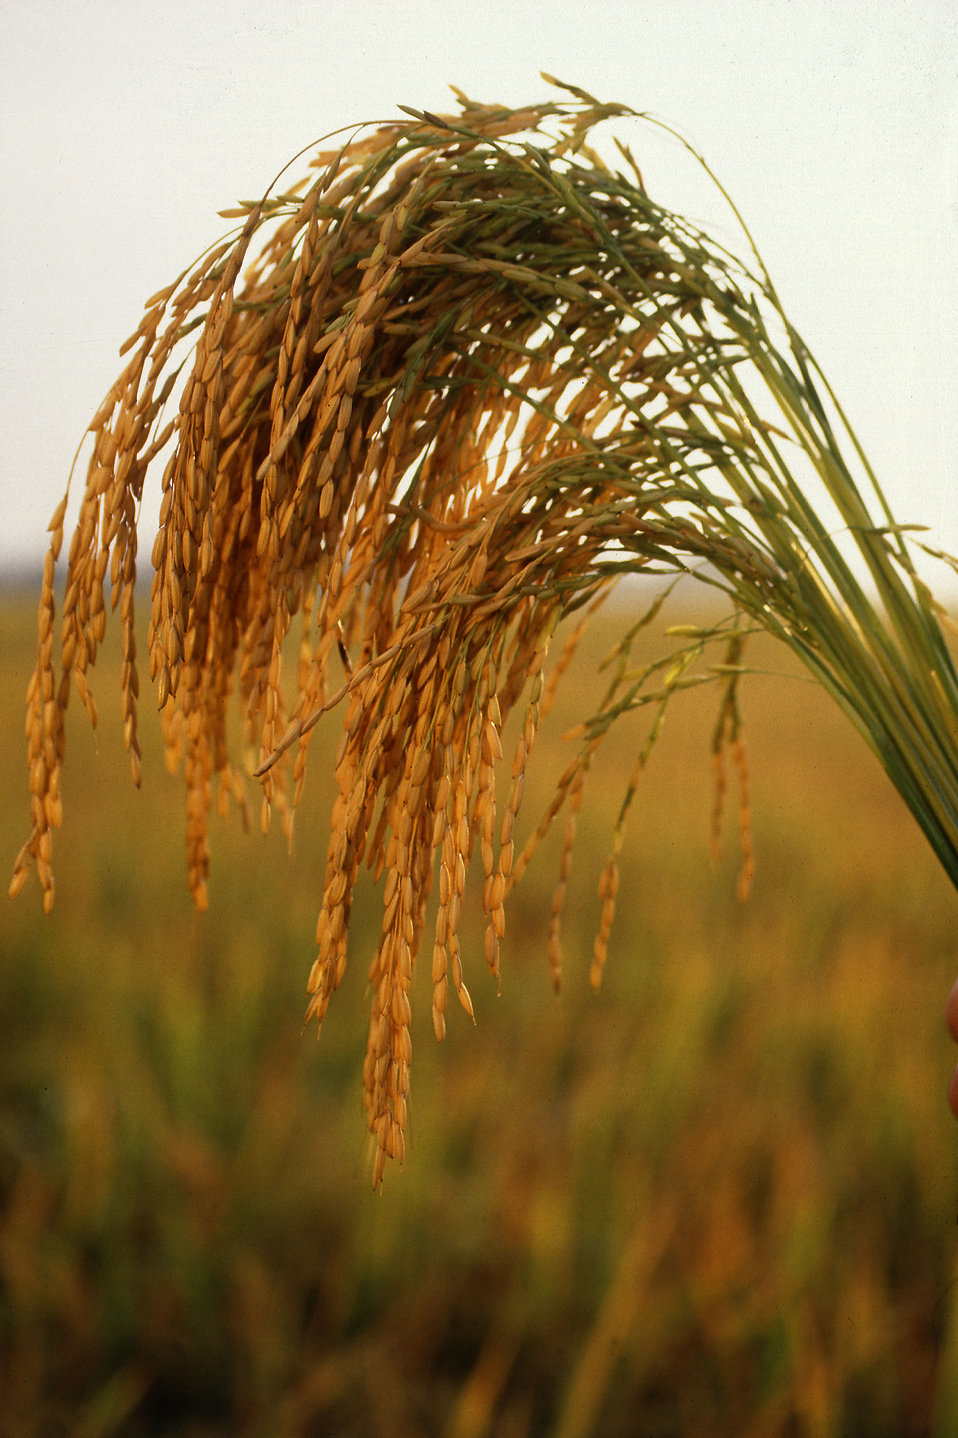 Close-up of long grain rice growing in a field : Free Stock Photo